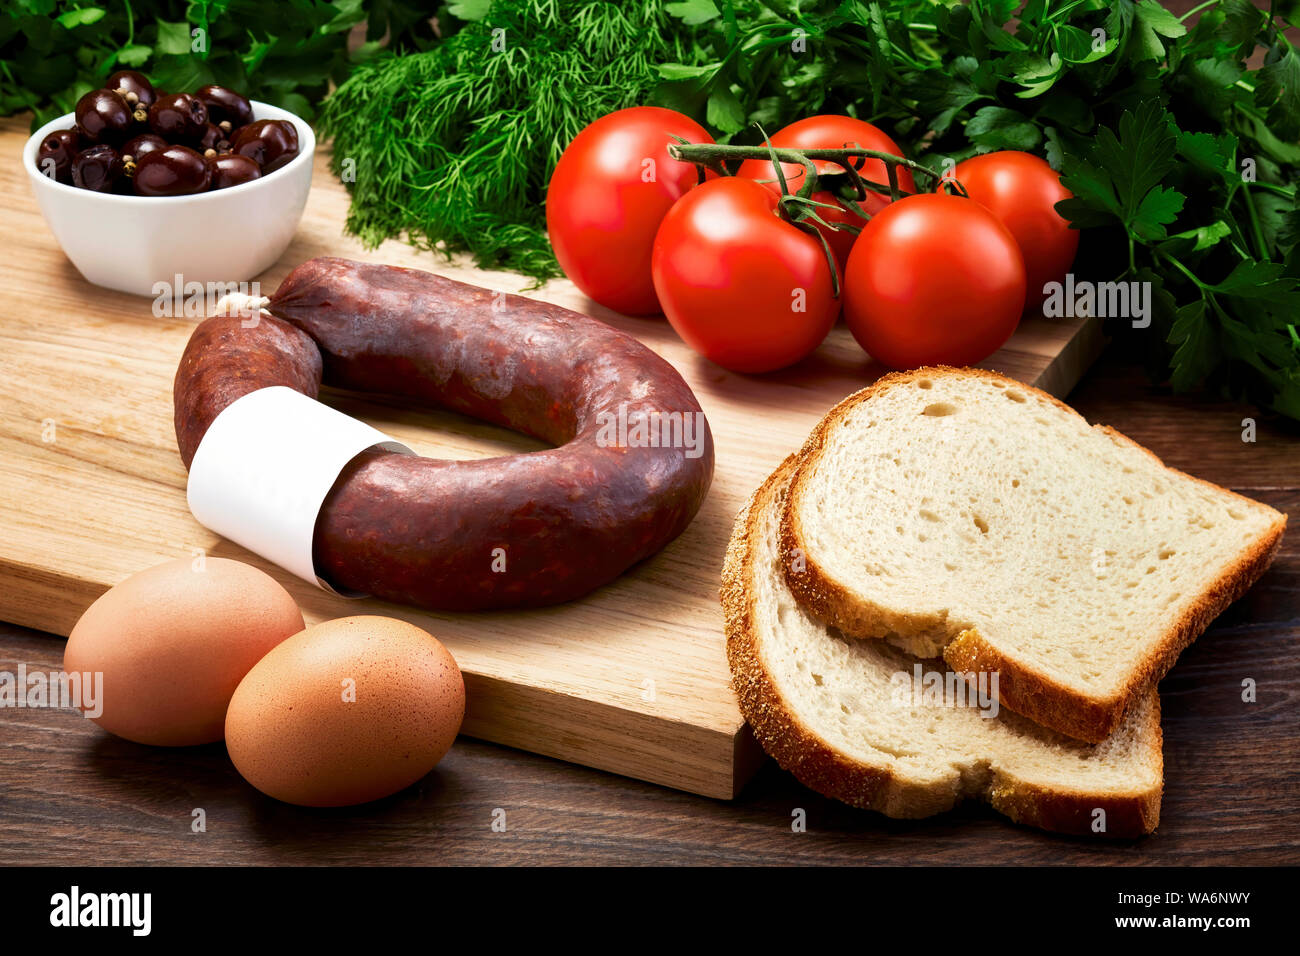 Turkish fermented sausage on wooden table with wooden cutting board with eggs, olive, parsley and tomatoes. Turkish breakfast. Stock Photo